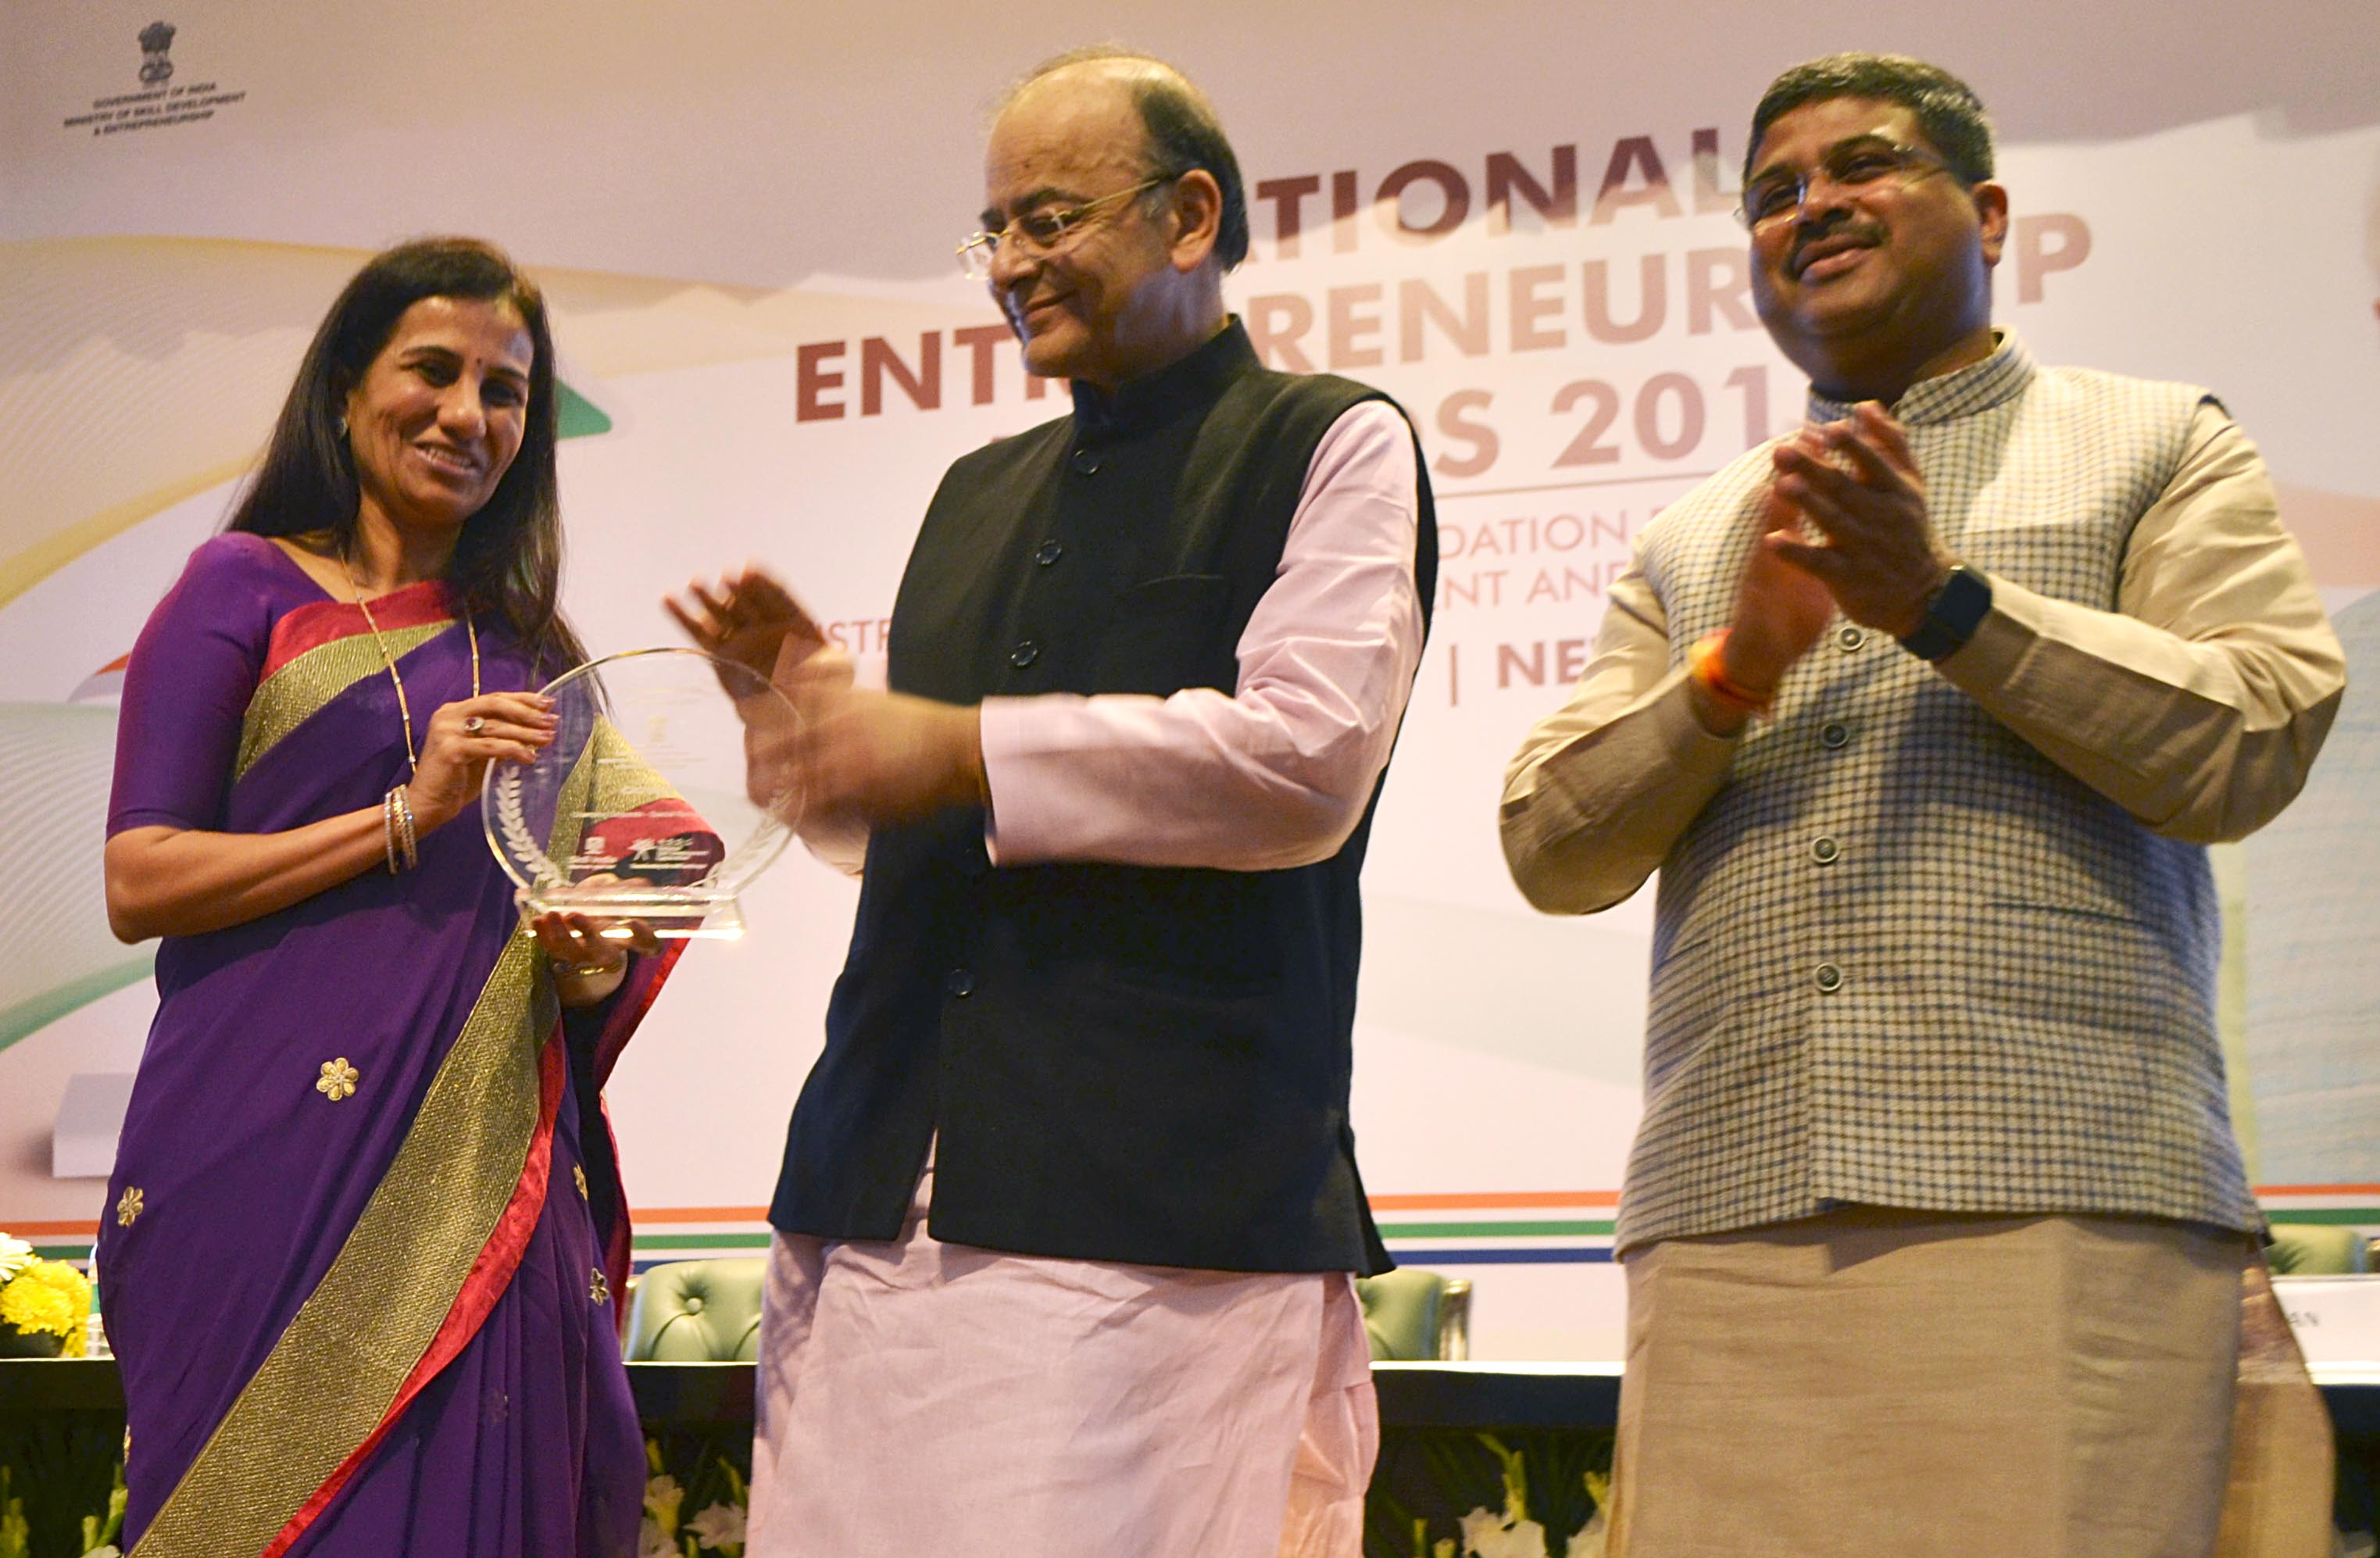 Ms. Chanda Kochhar receives award from Shri Arun Jaitley and Shri Dharmendra Pradhan